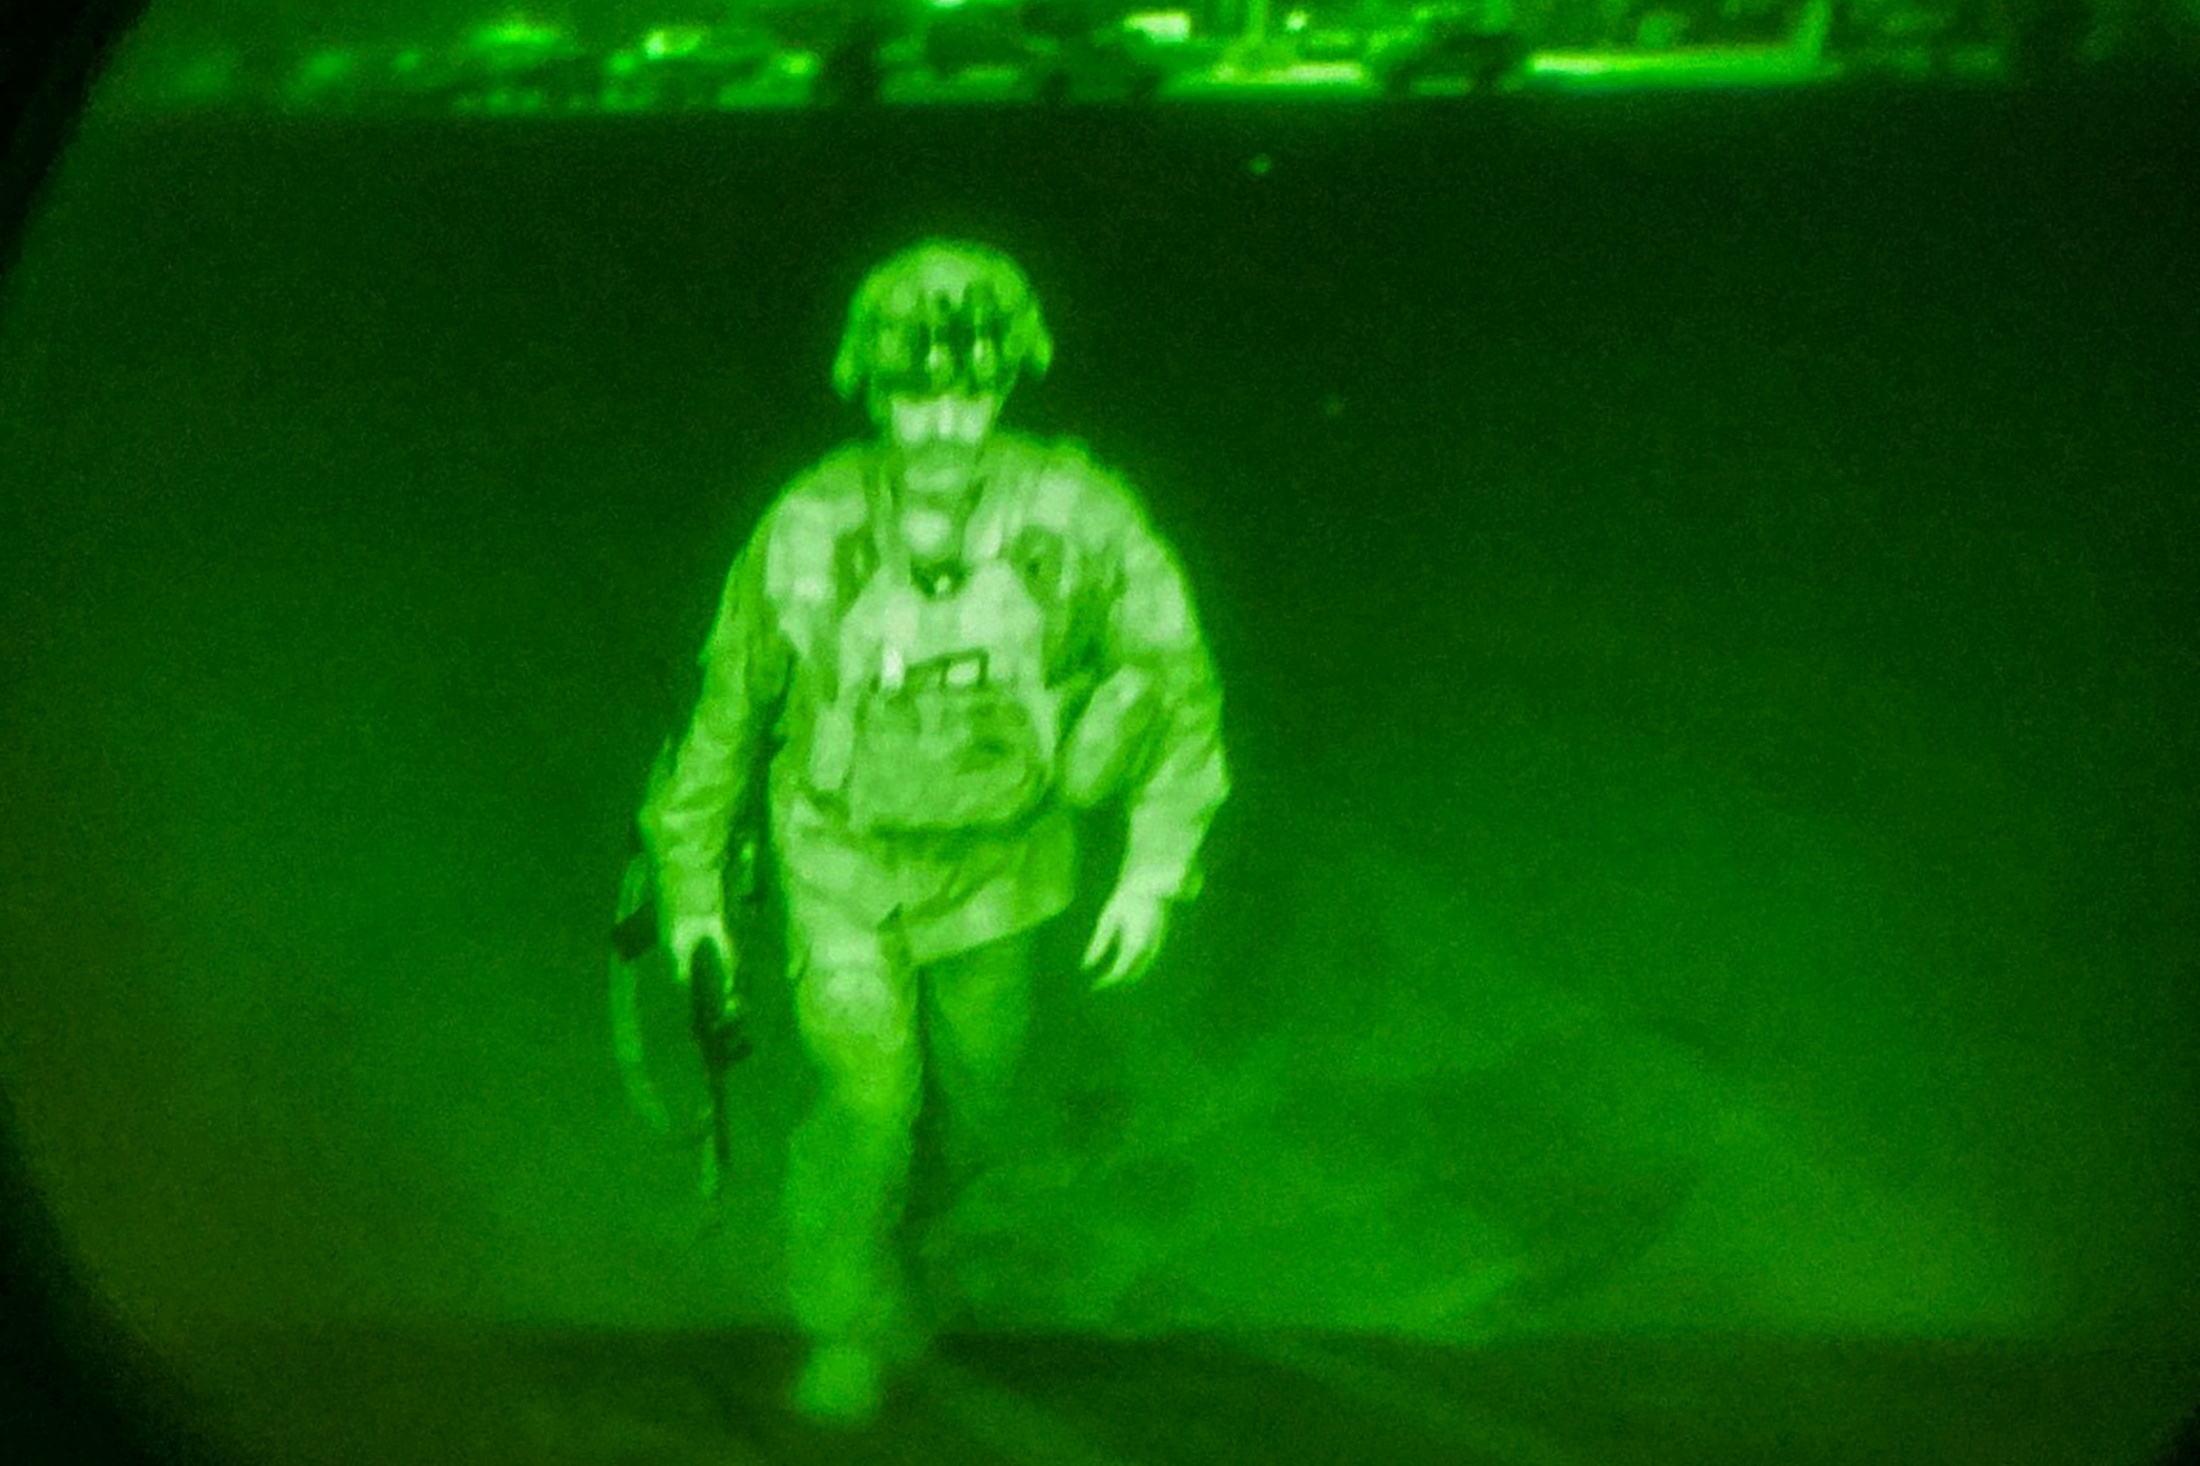 U.S. Army Major General Chris Donahue, commander of the 82nd Airborne Division, steps on board a C-17 transport plane as the last U.S. service member to leave Hamid Karzai International Airport in Kabul, Afghanistan August 30, 2021 in a photograph taken using night vision optics.  XVIII Airborne Corps/Handout via REUTERS